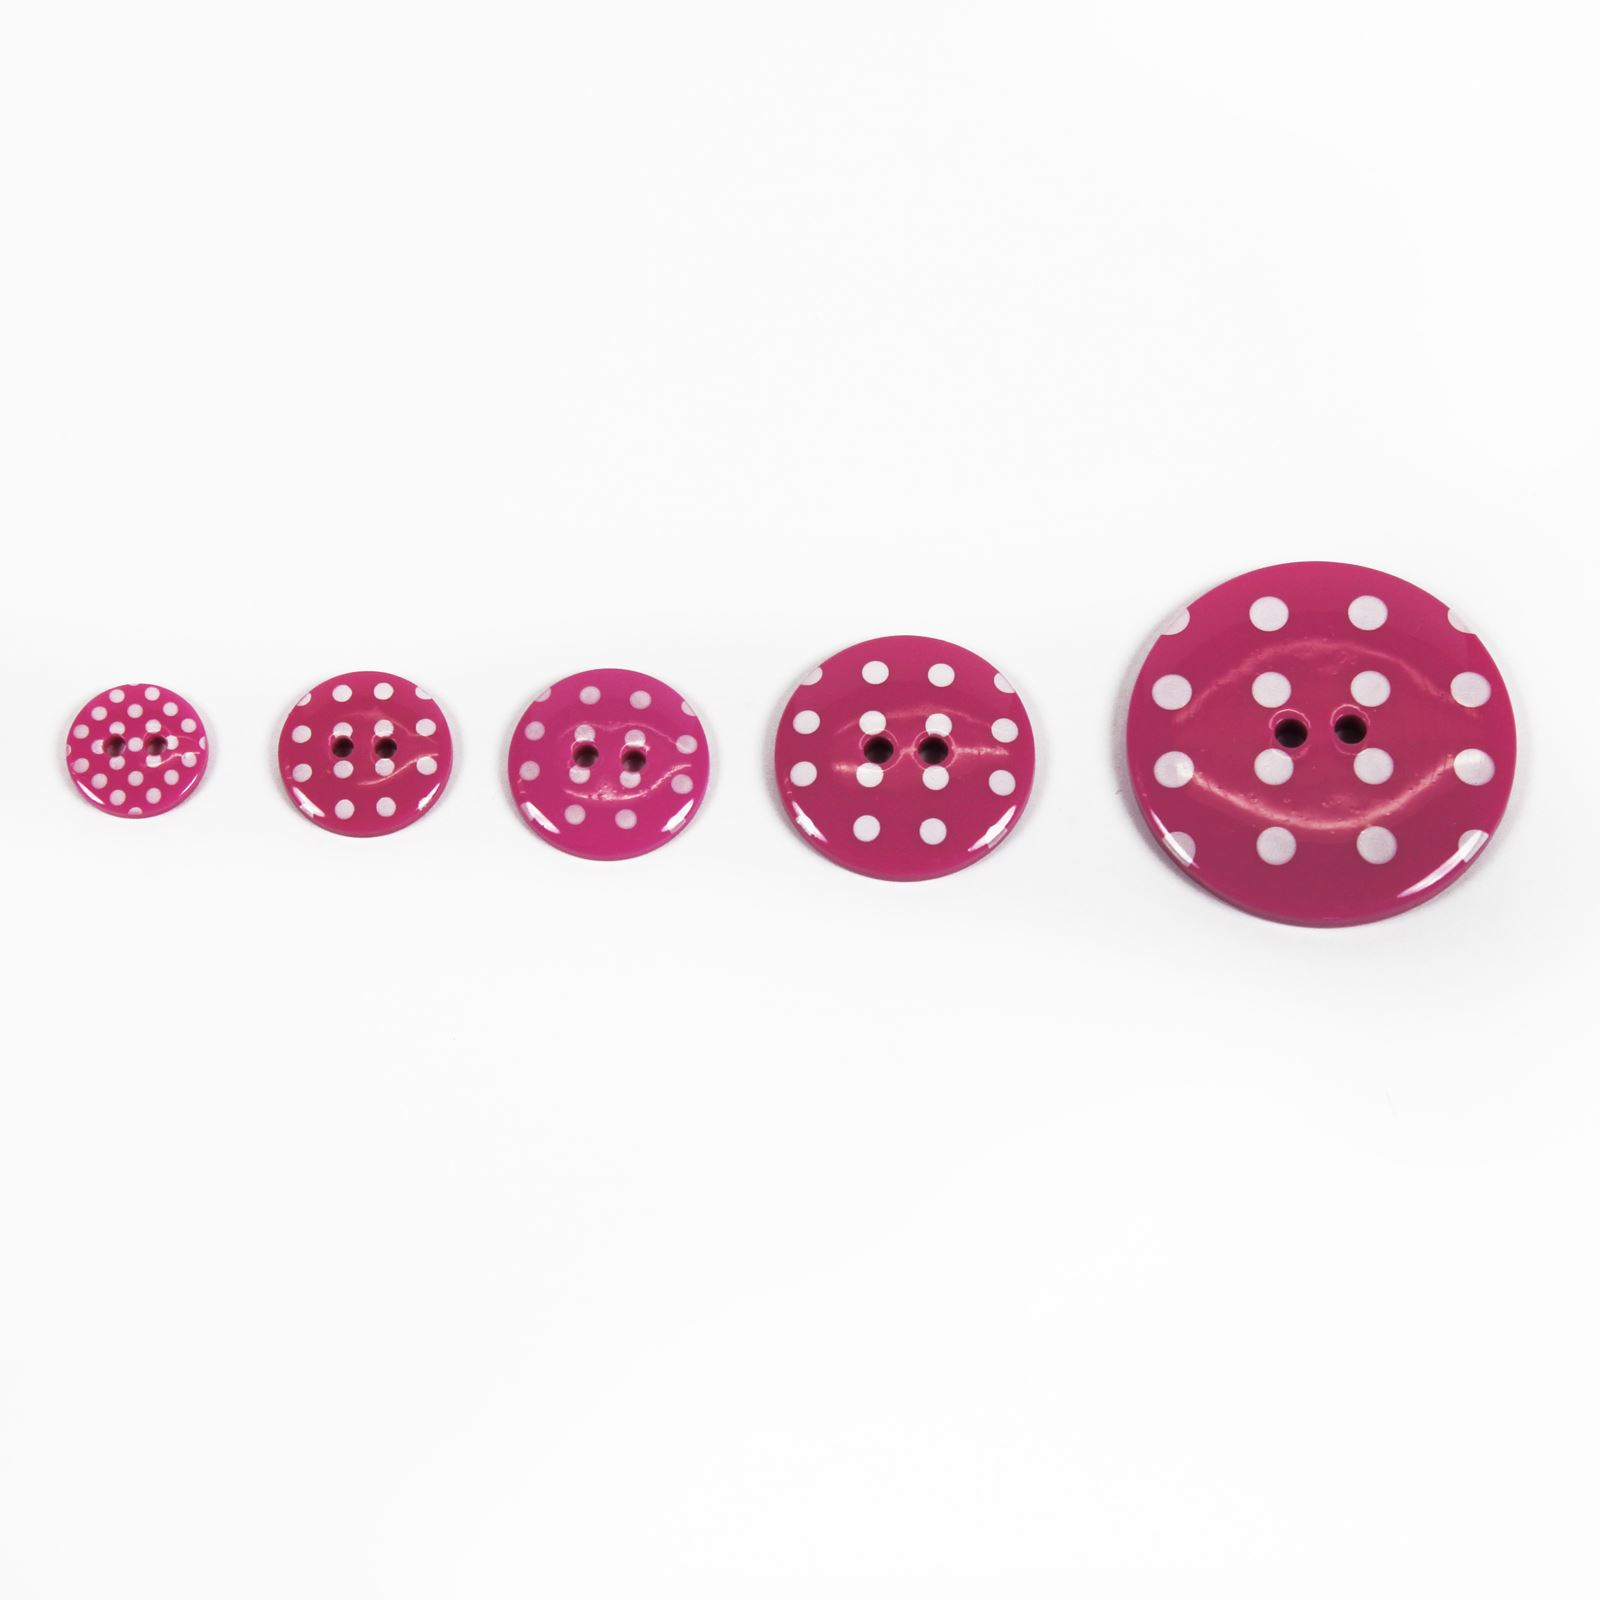 10 Pink Polka Dot Sewing Buttons 15mm Pink and White Spot Girls Clothing Buttons